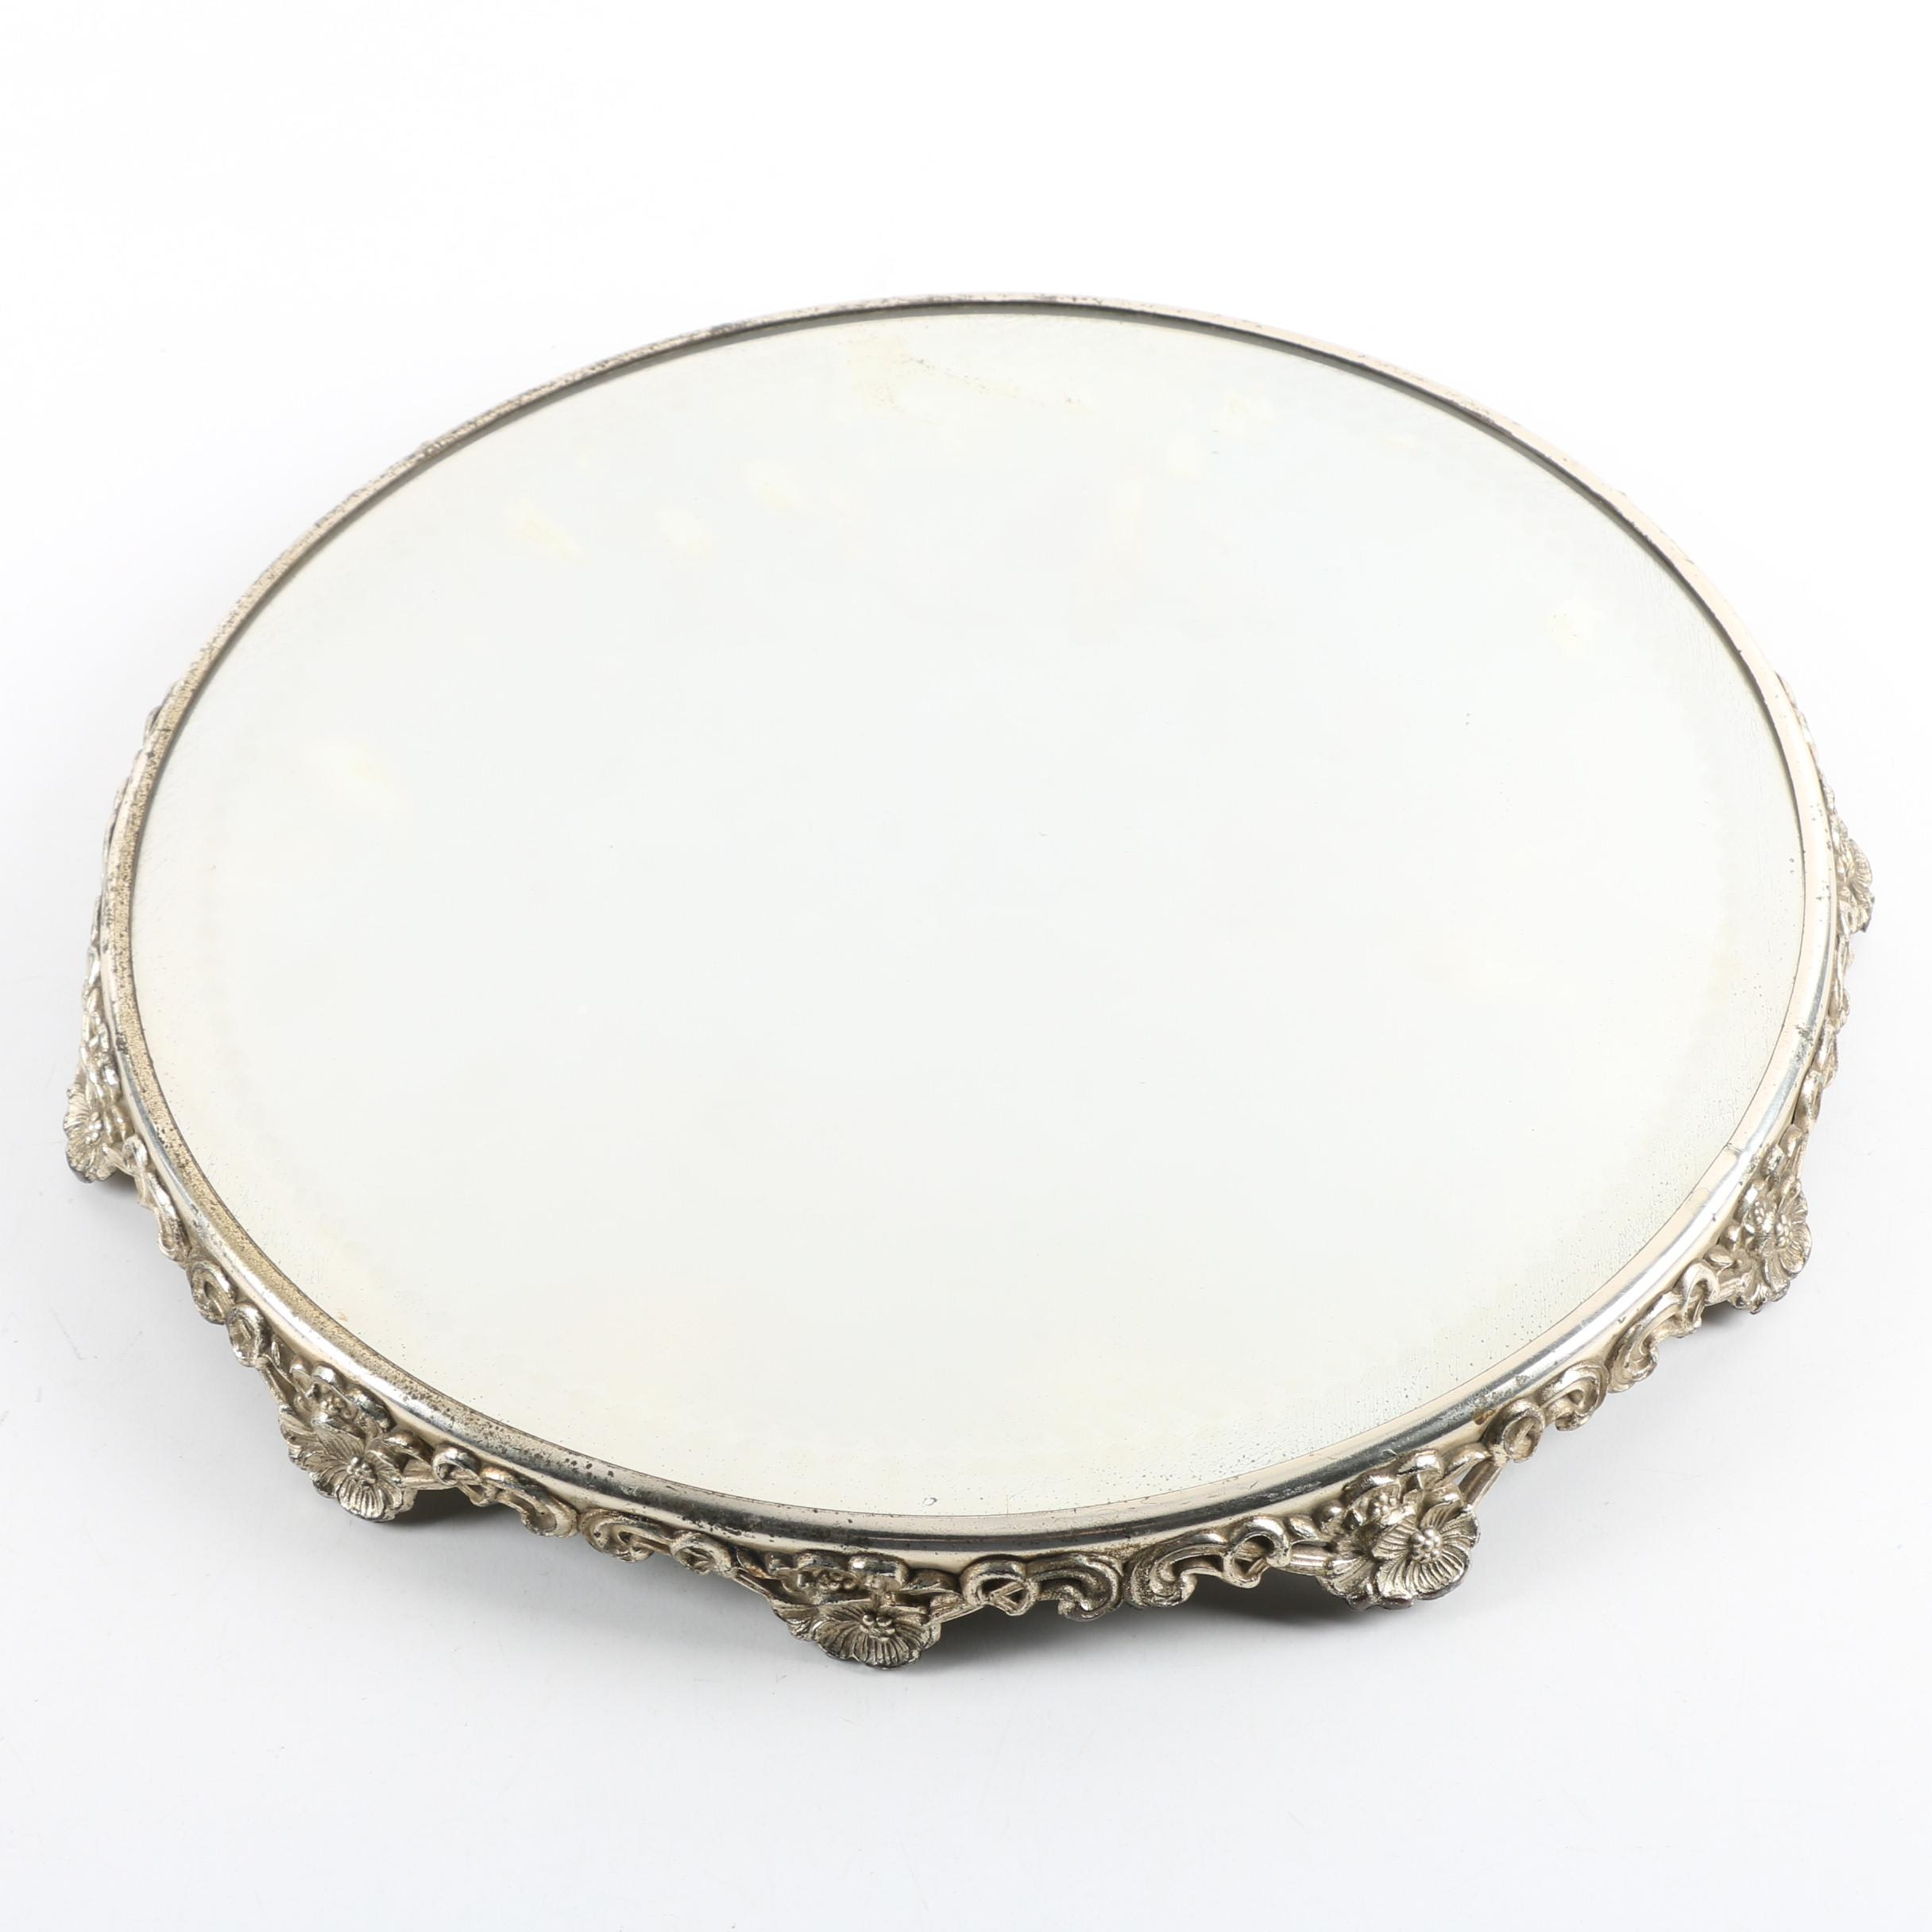 Mirrored Vanity Tray with Floral Accents